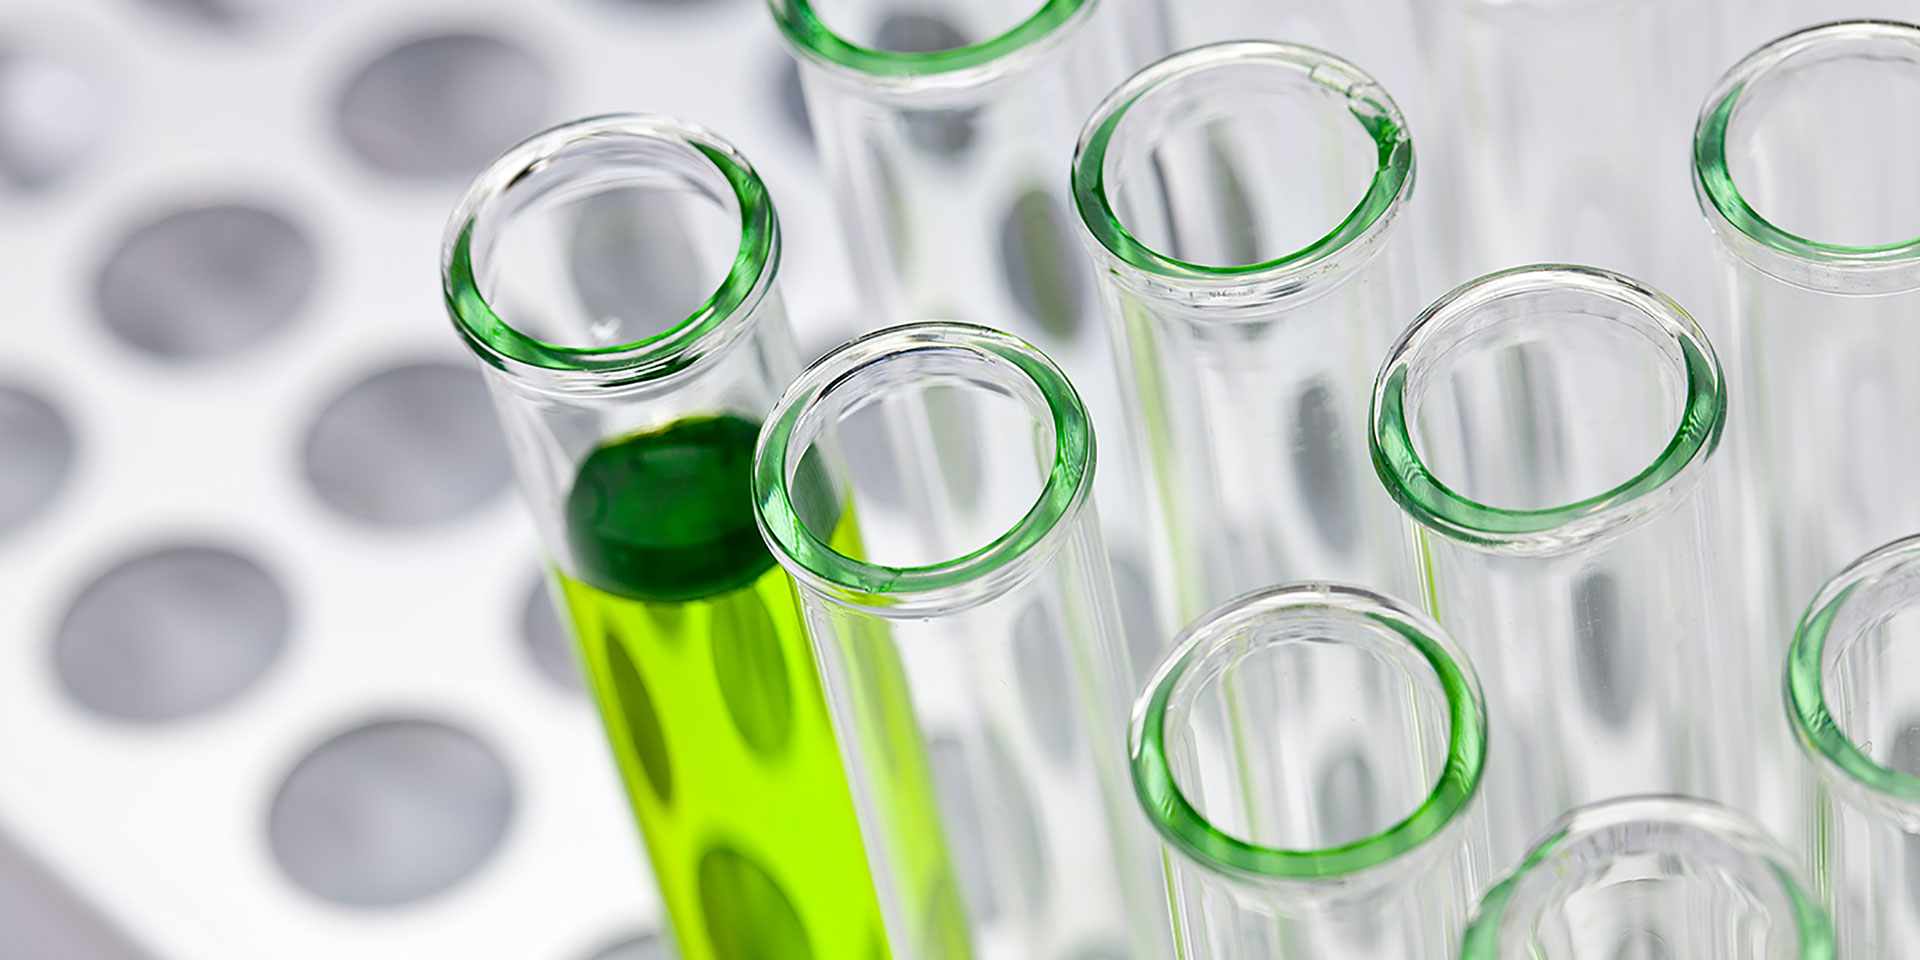 Test tubes in a metal rack, one containing clear green liquid.